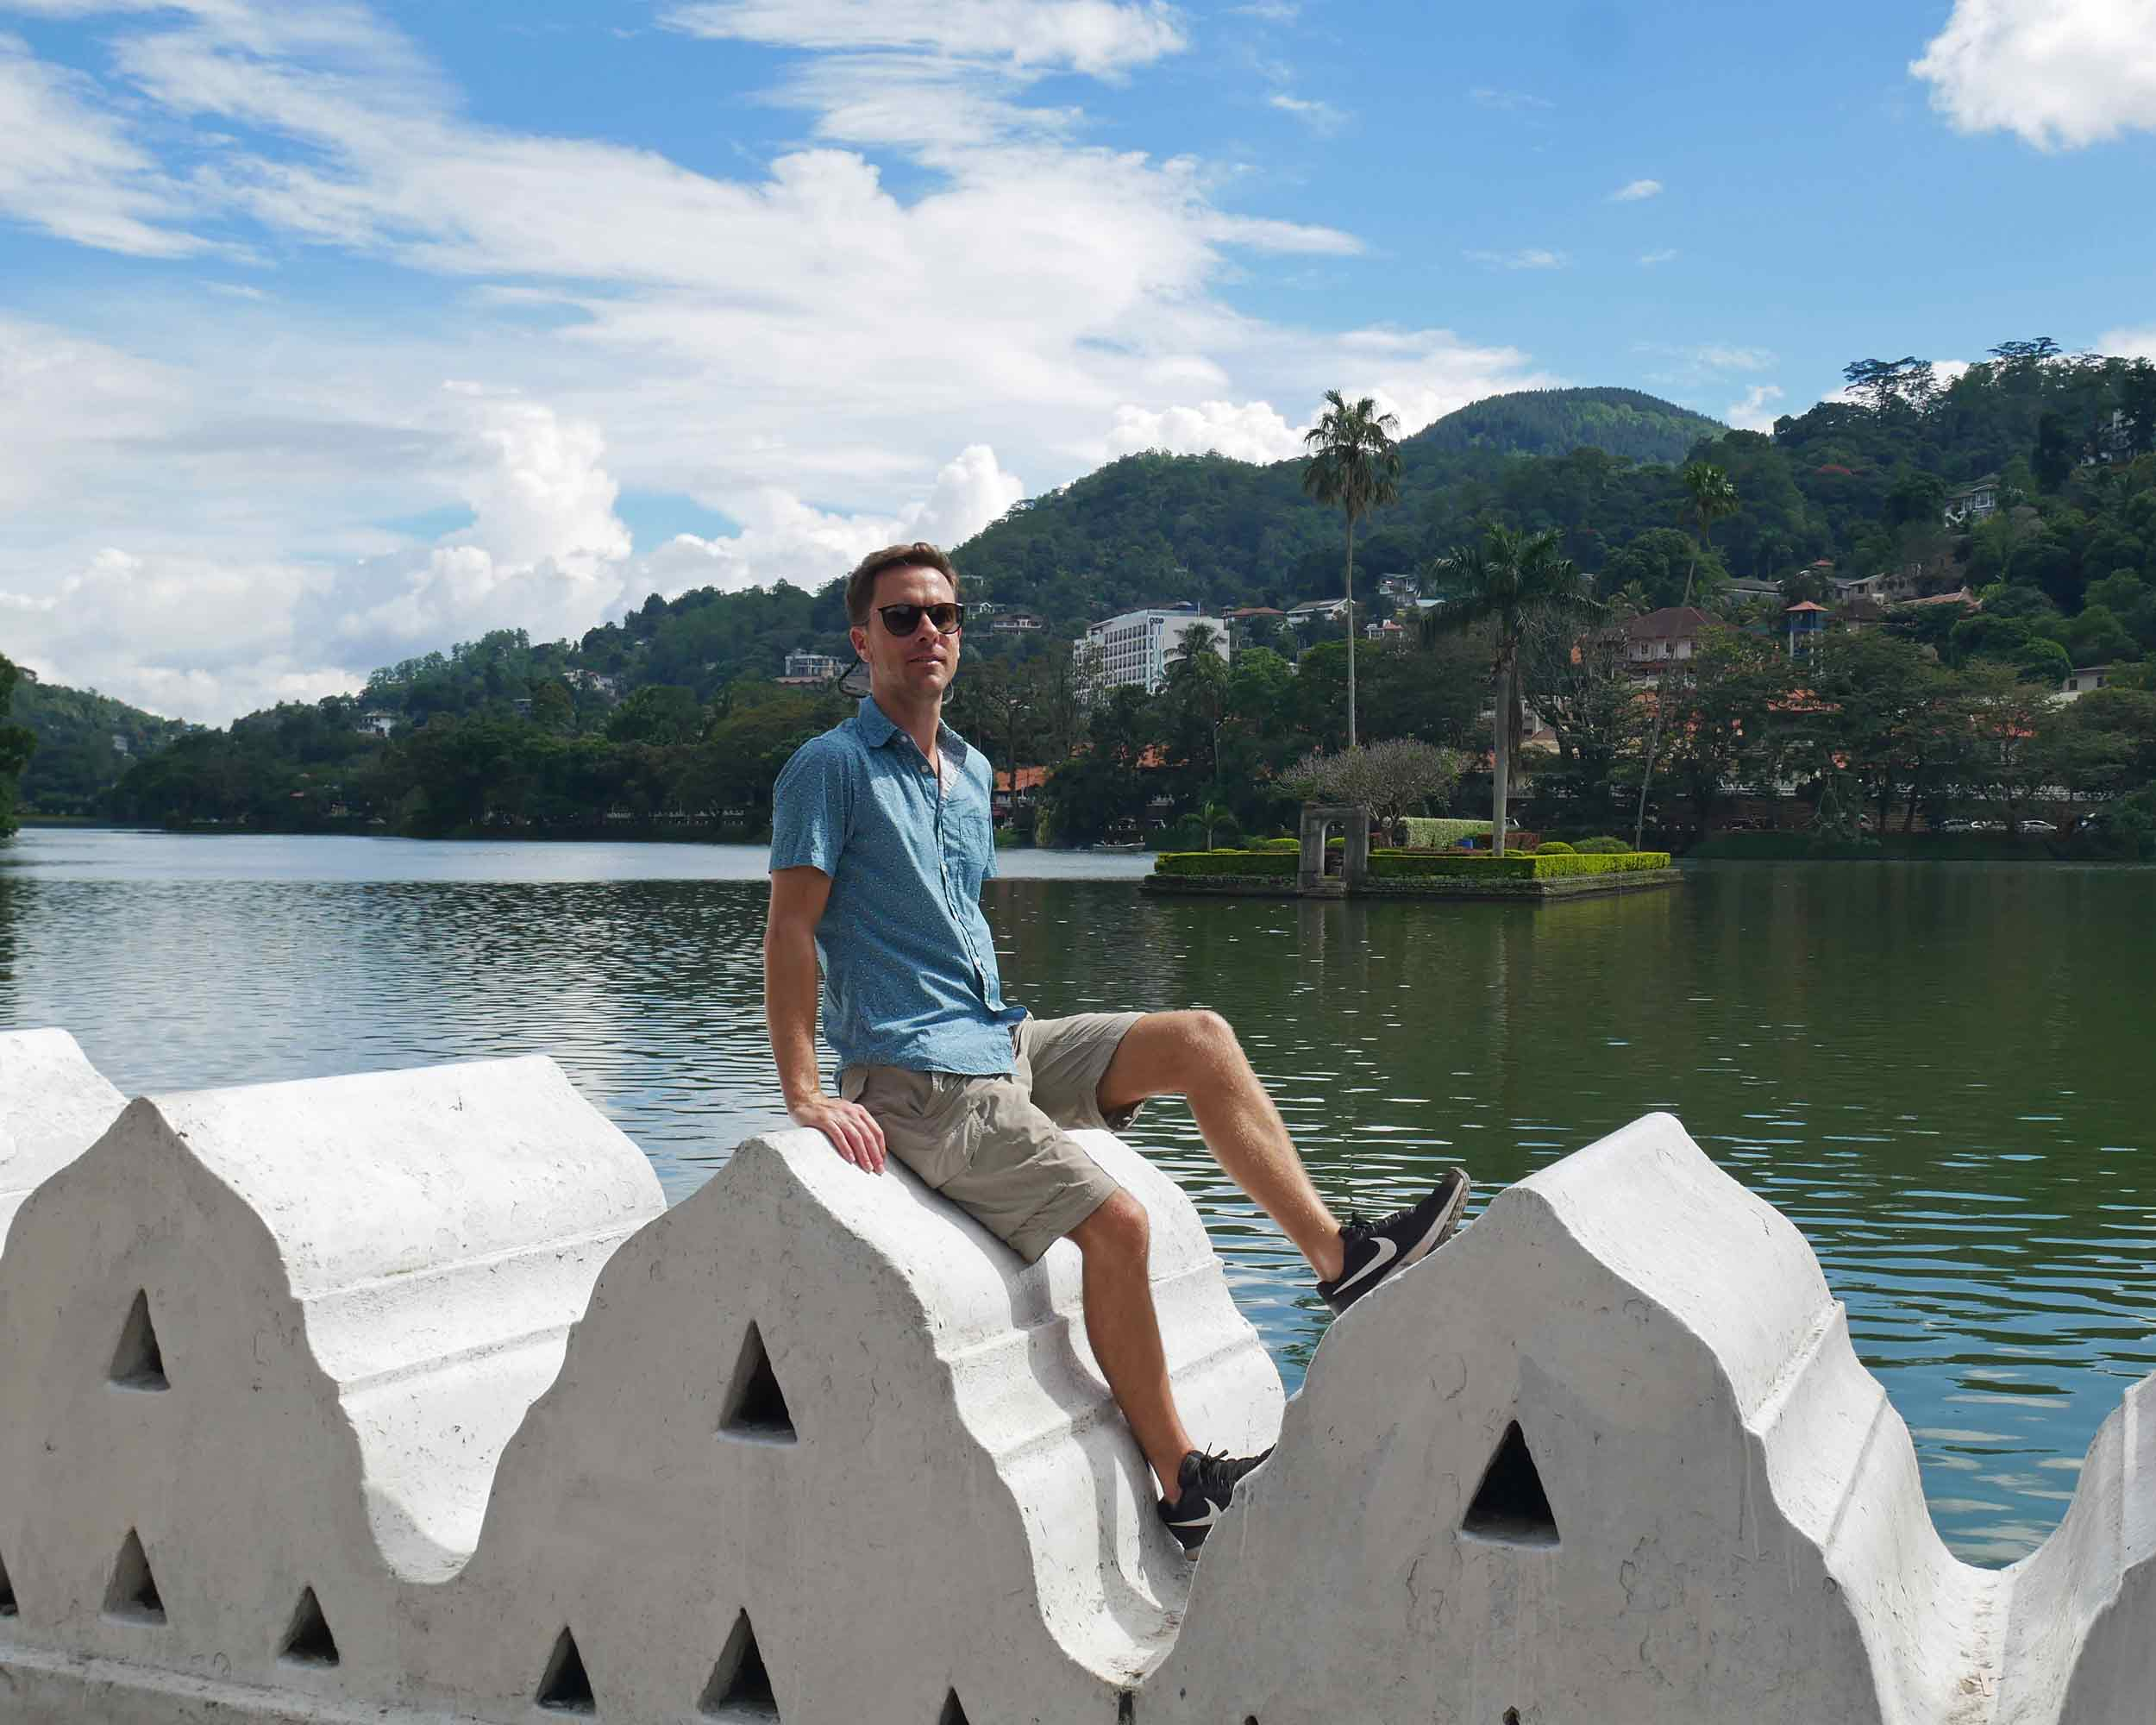 Taking in the sunshine at the picturesque Bogambara Lake, which sits at the edge of Kandy next to the Temple of the Sacred Tooth Relic.